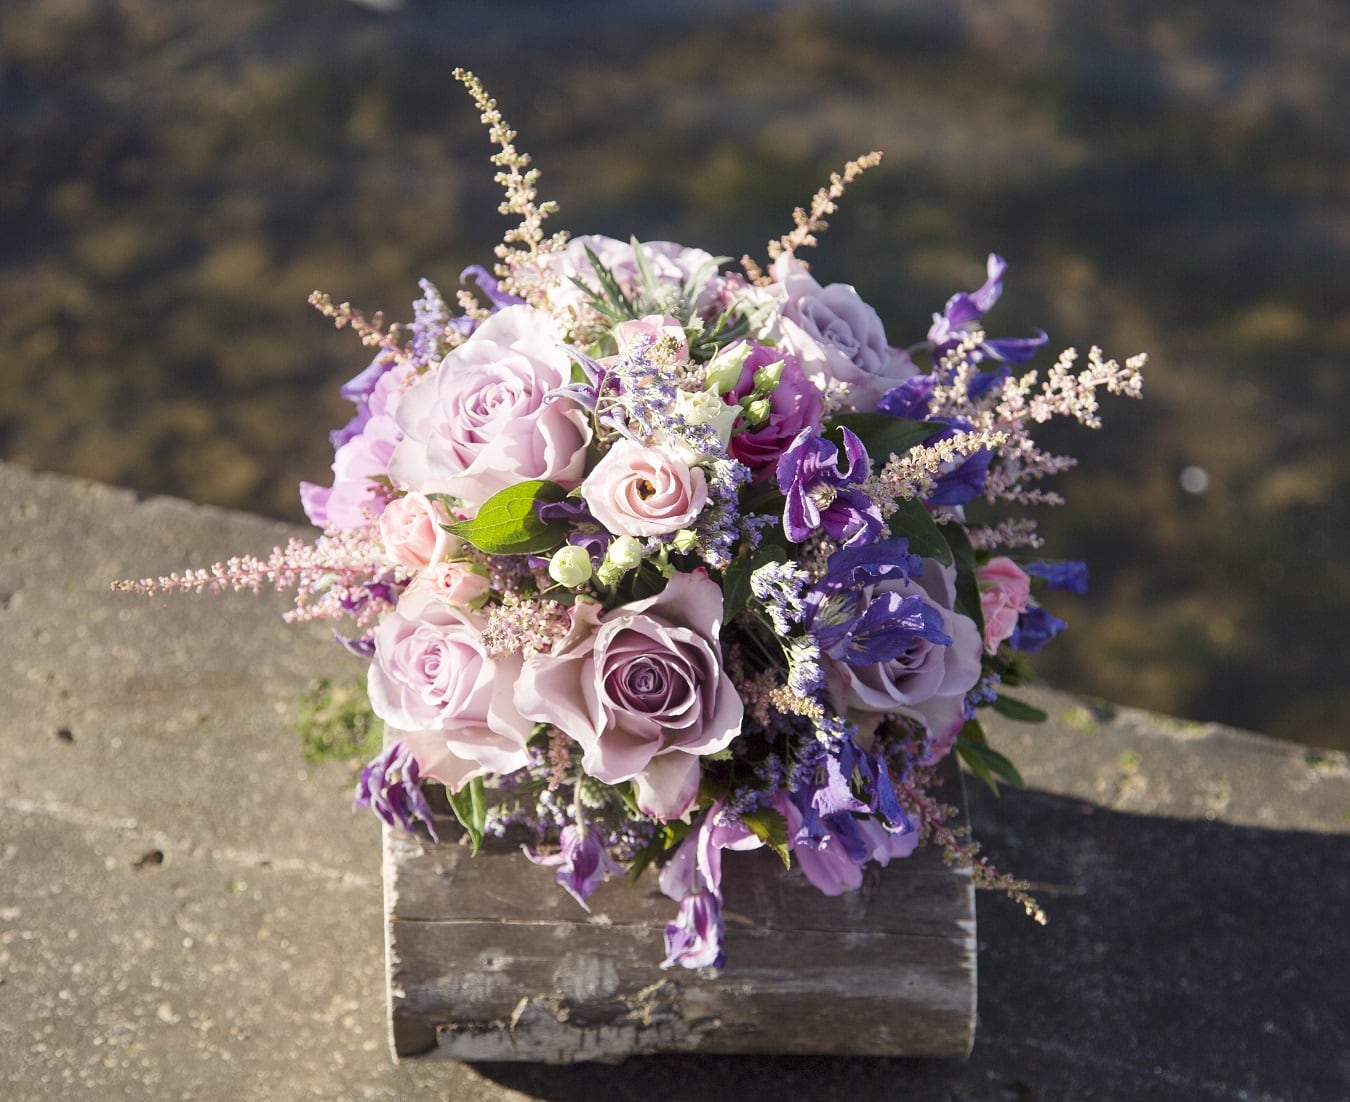 the-daisy-chain-scottish-wedding-florist-design